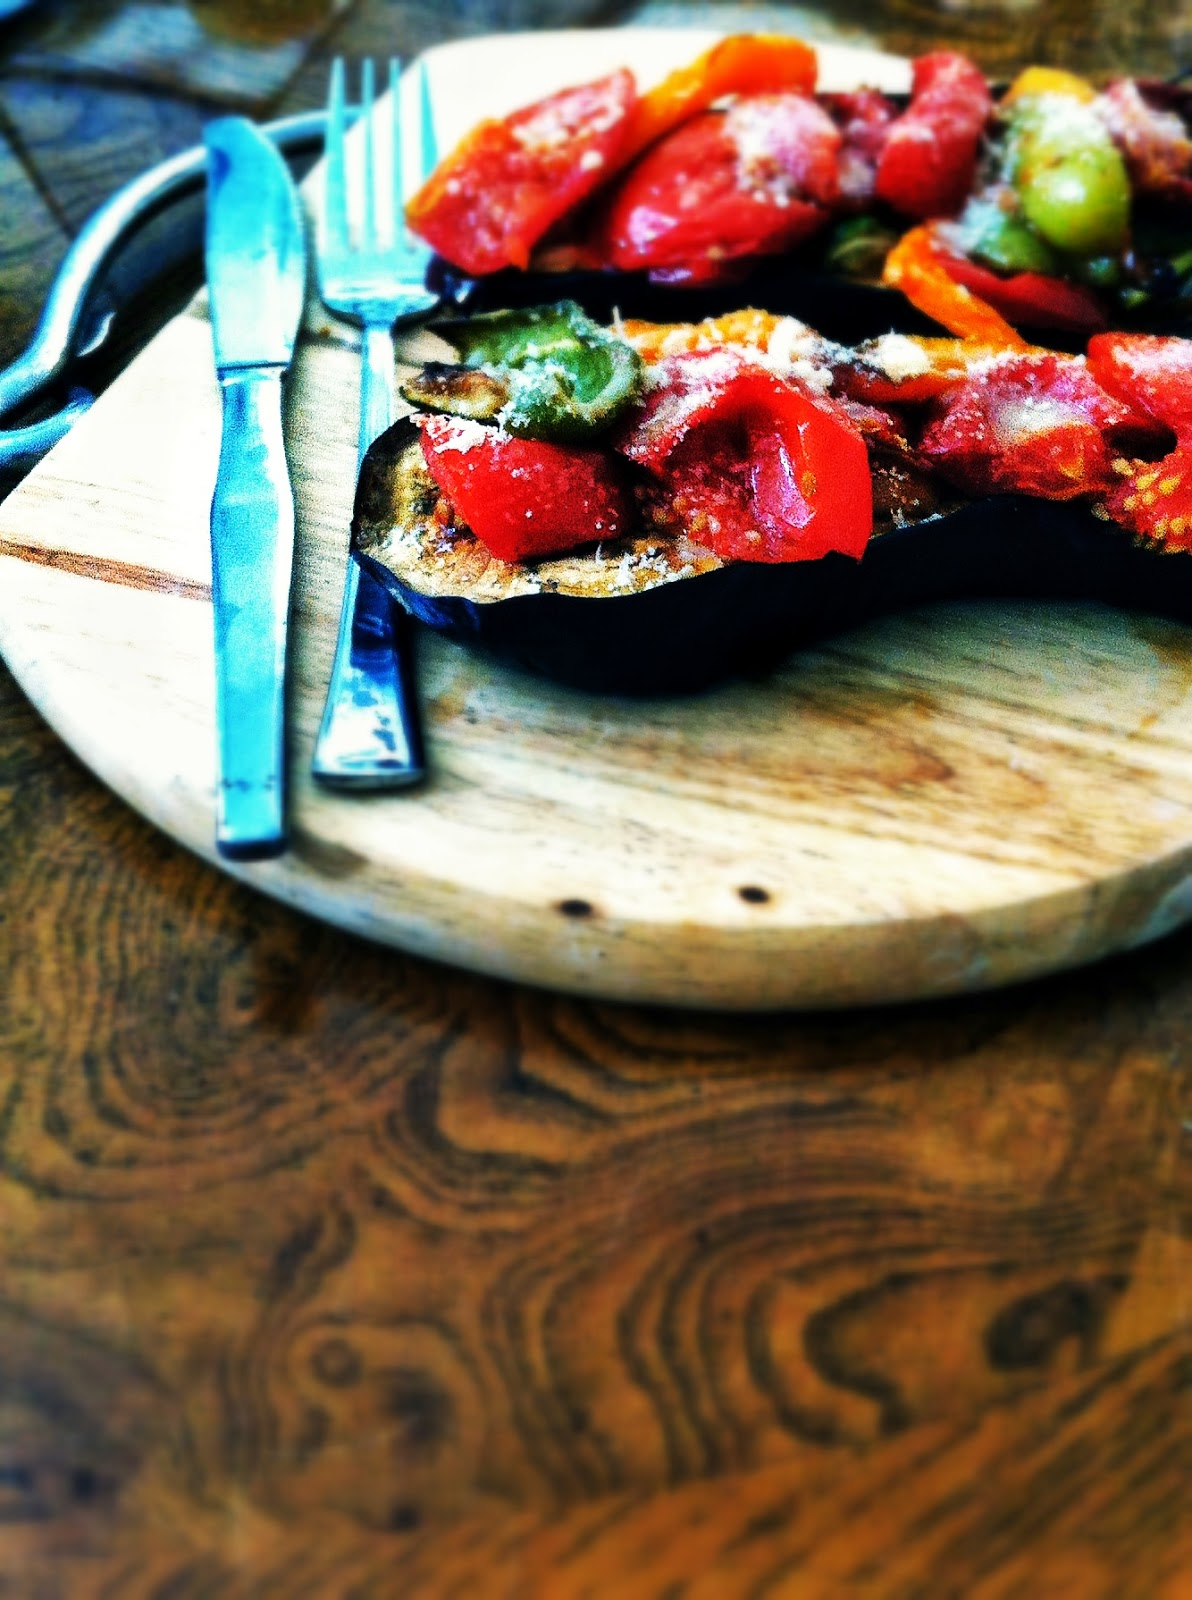 aubergine with roasted vegetables and parmesan